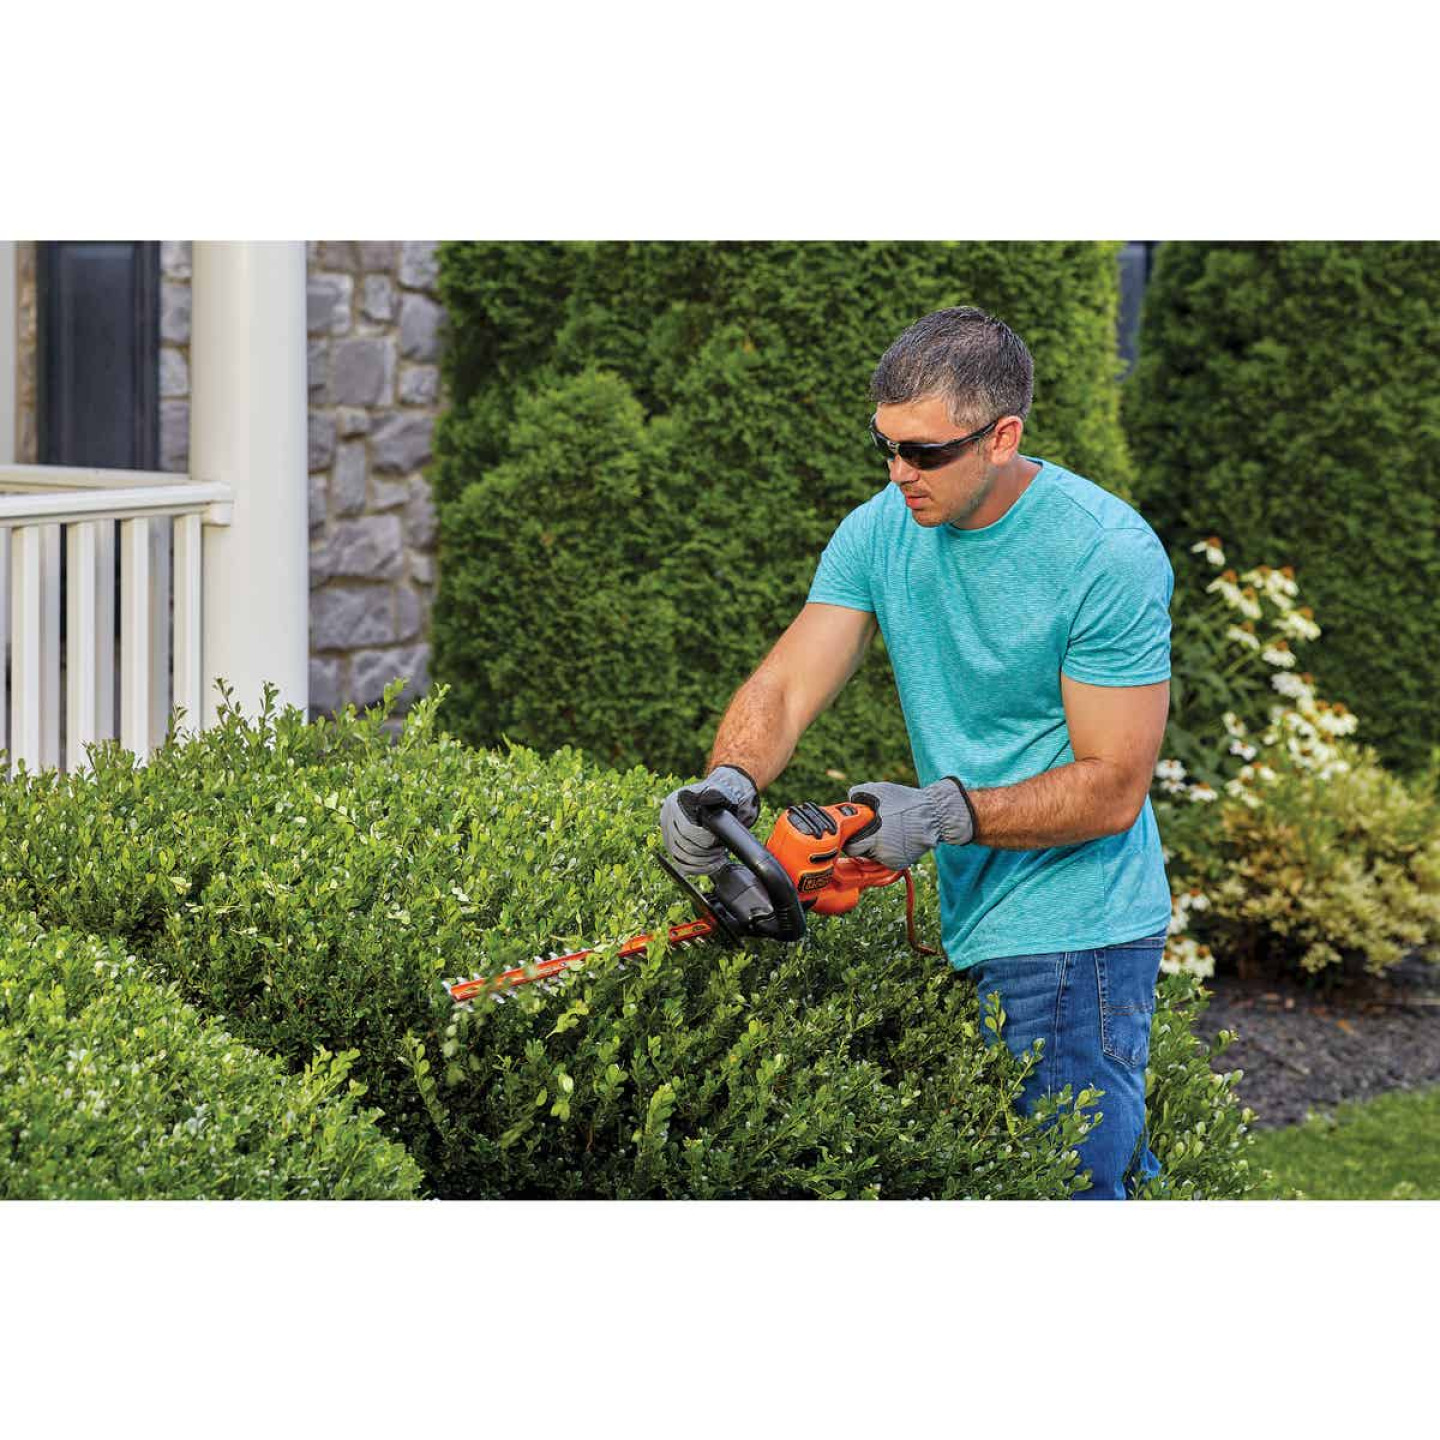 Black & Decker 16 In. 3A Corded Electric Hedge Trimmer Image 2